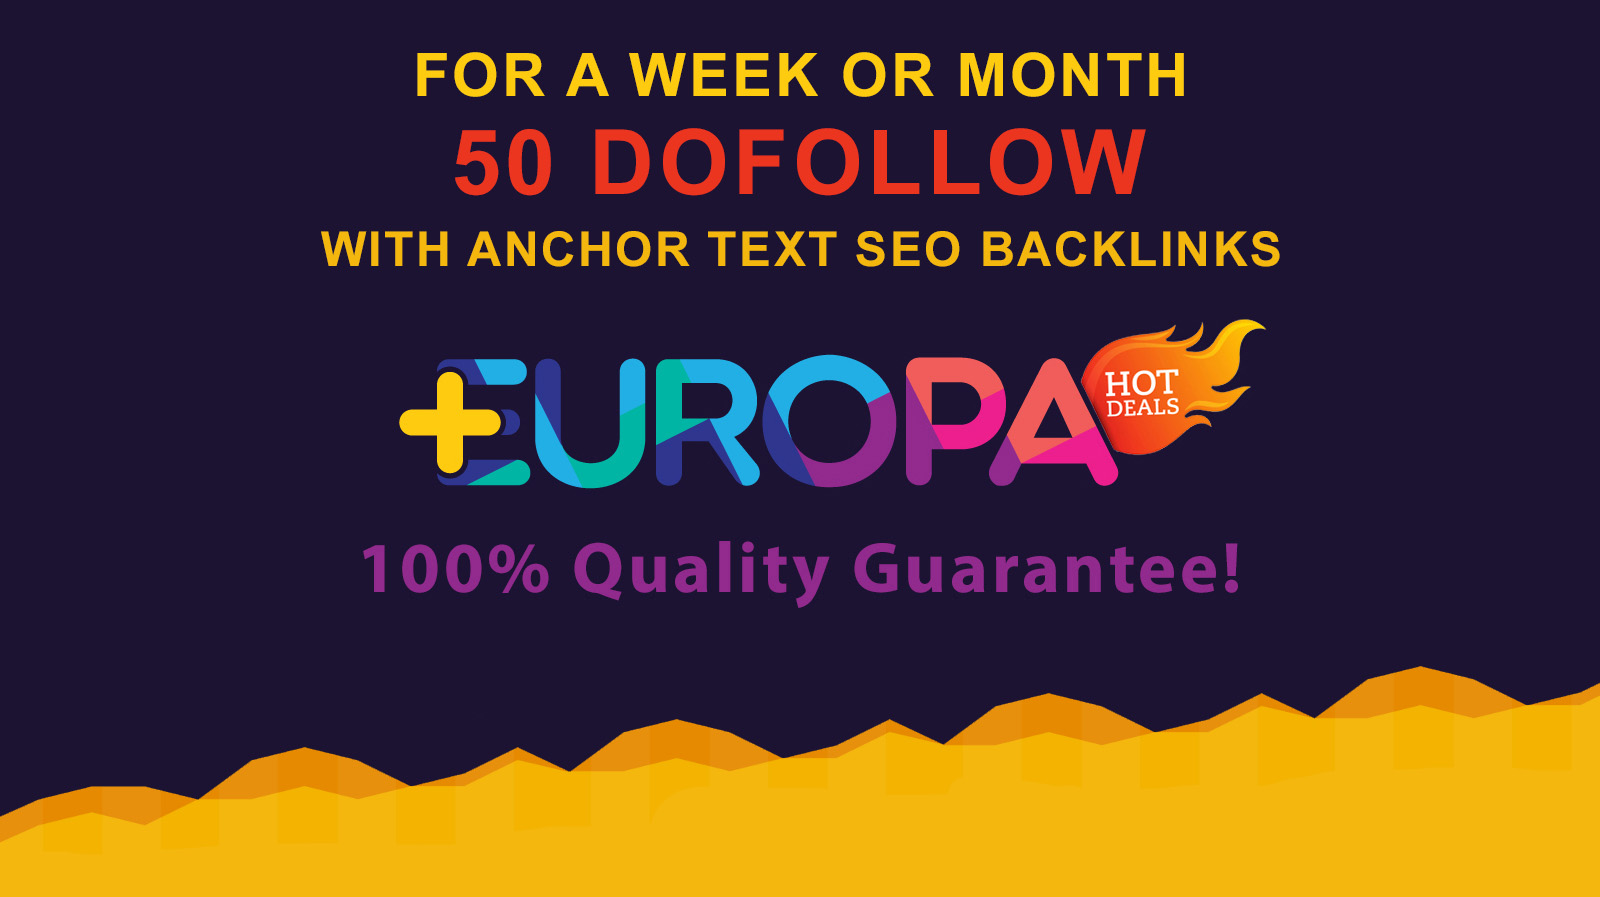 150 DOFOLLOW WITH ANCHOR TEXT SEO BACKLINKS